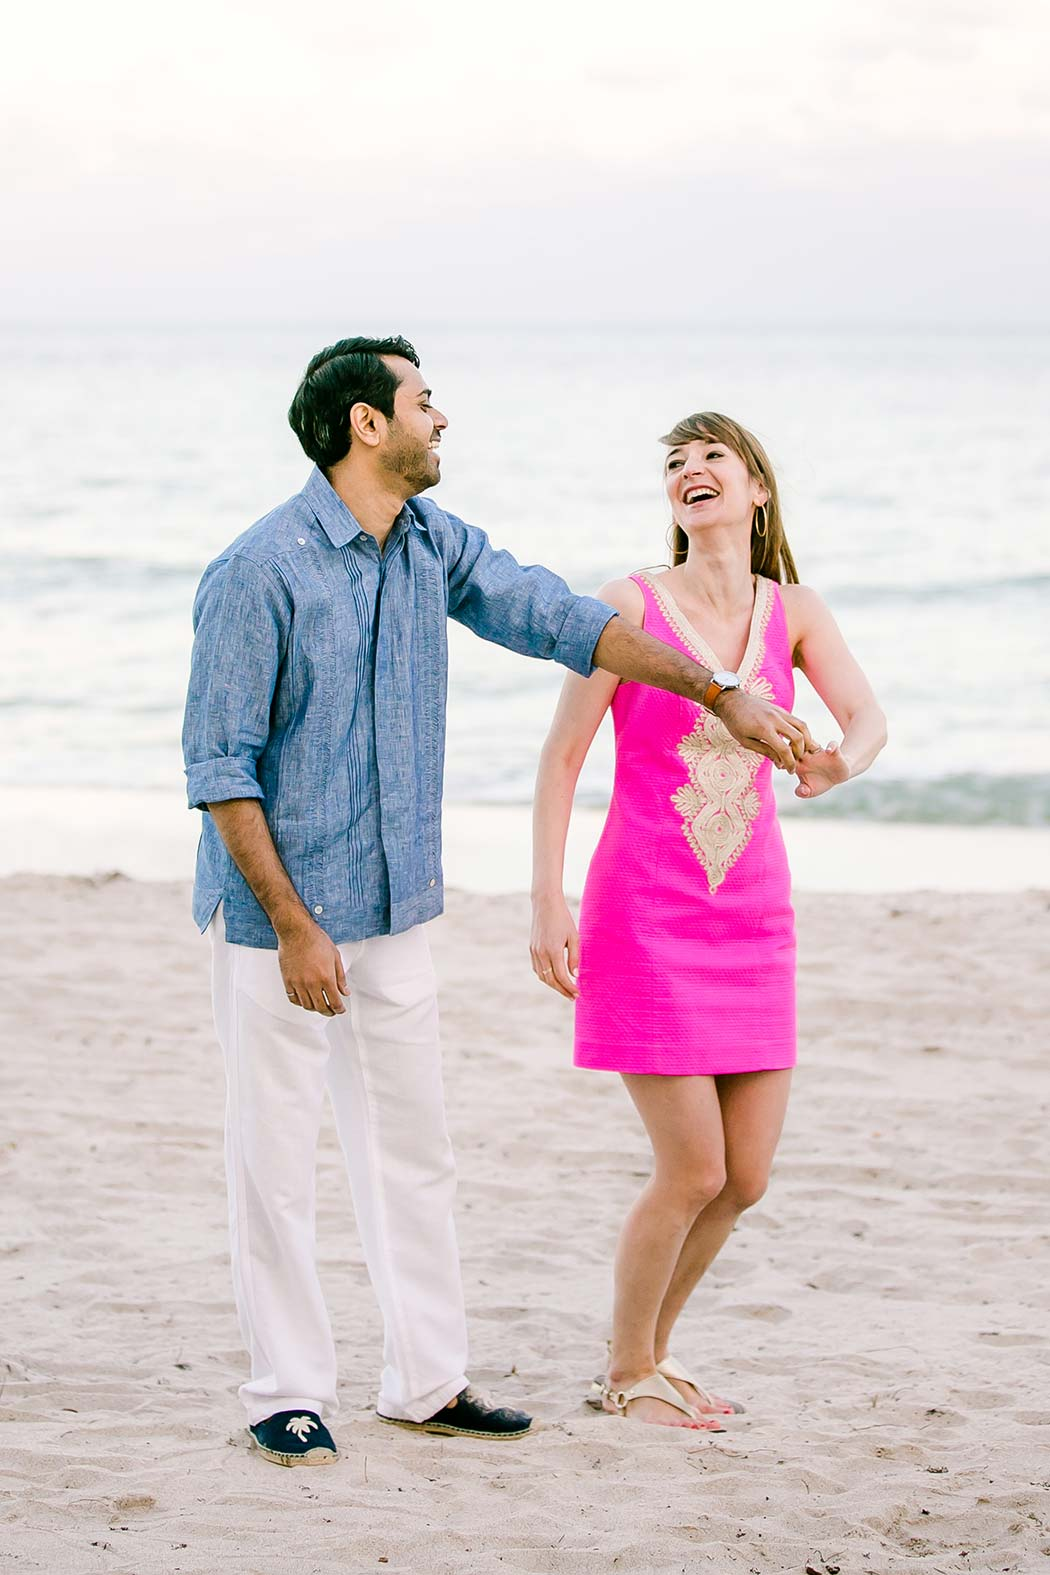 cute dancing couple on fort lauderdale beach | fort lauderdale beach engagement photography | indian couple beach engagement photoshoot fort lauderdale